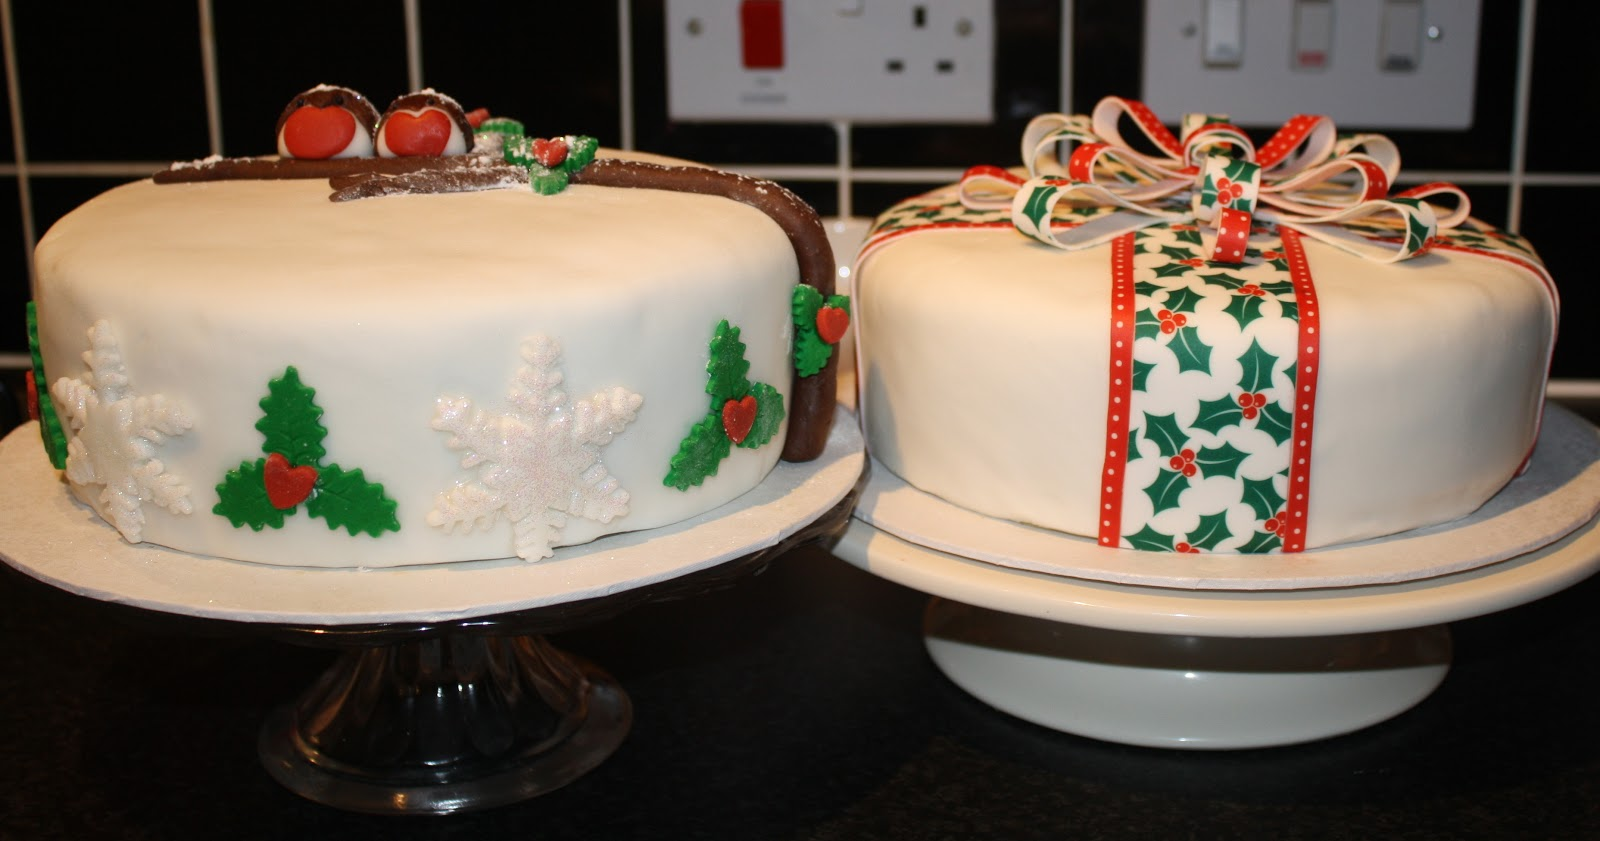 Cake Decorating Ideas For Christmas Cakes : a million dresses UK Fashion and Lifestyle Blog: Sunday ...